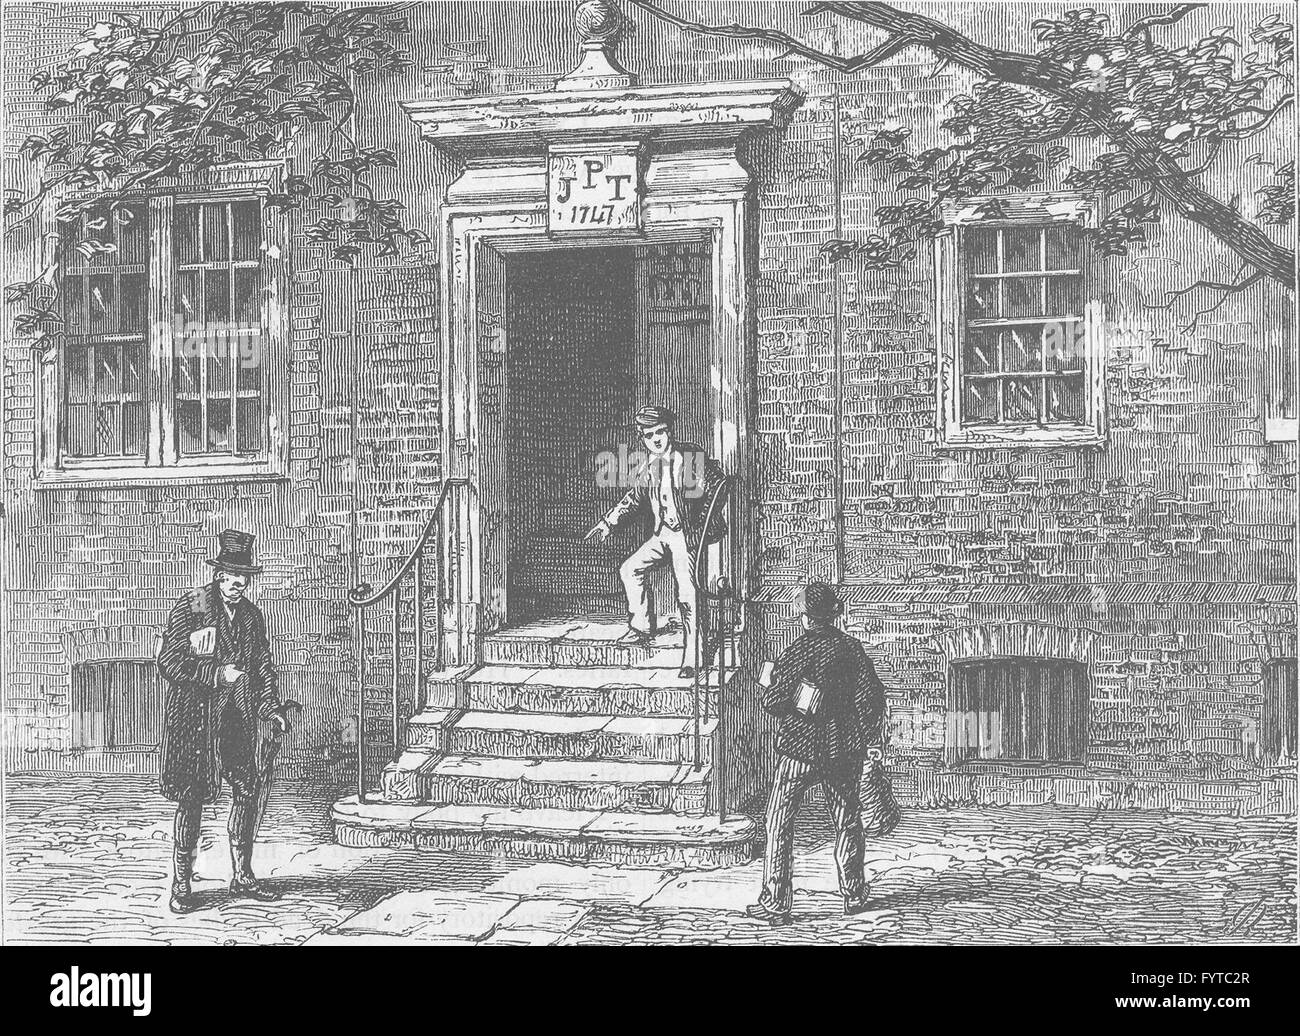 THE HOLBORN INNS OF COURT AND CHANCERY: Doorway in staple Inn. London, c1880 - Stock Image